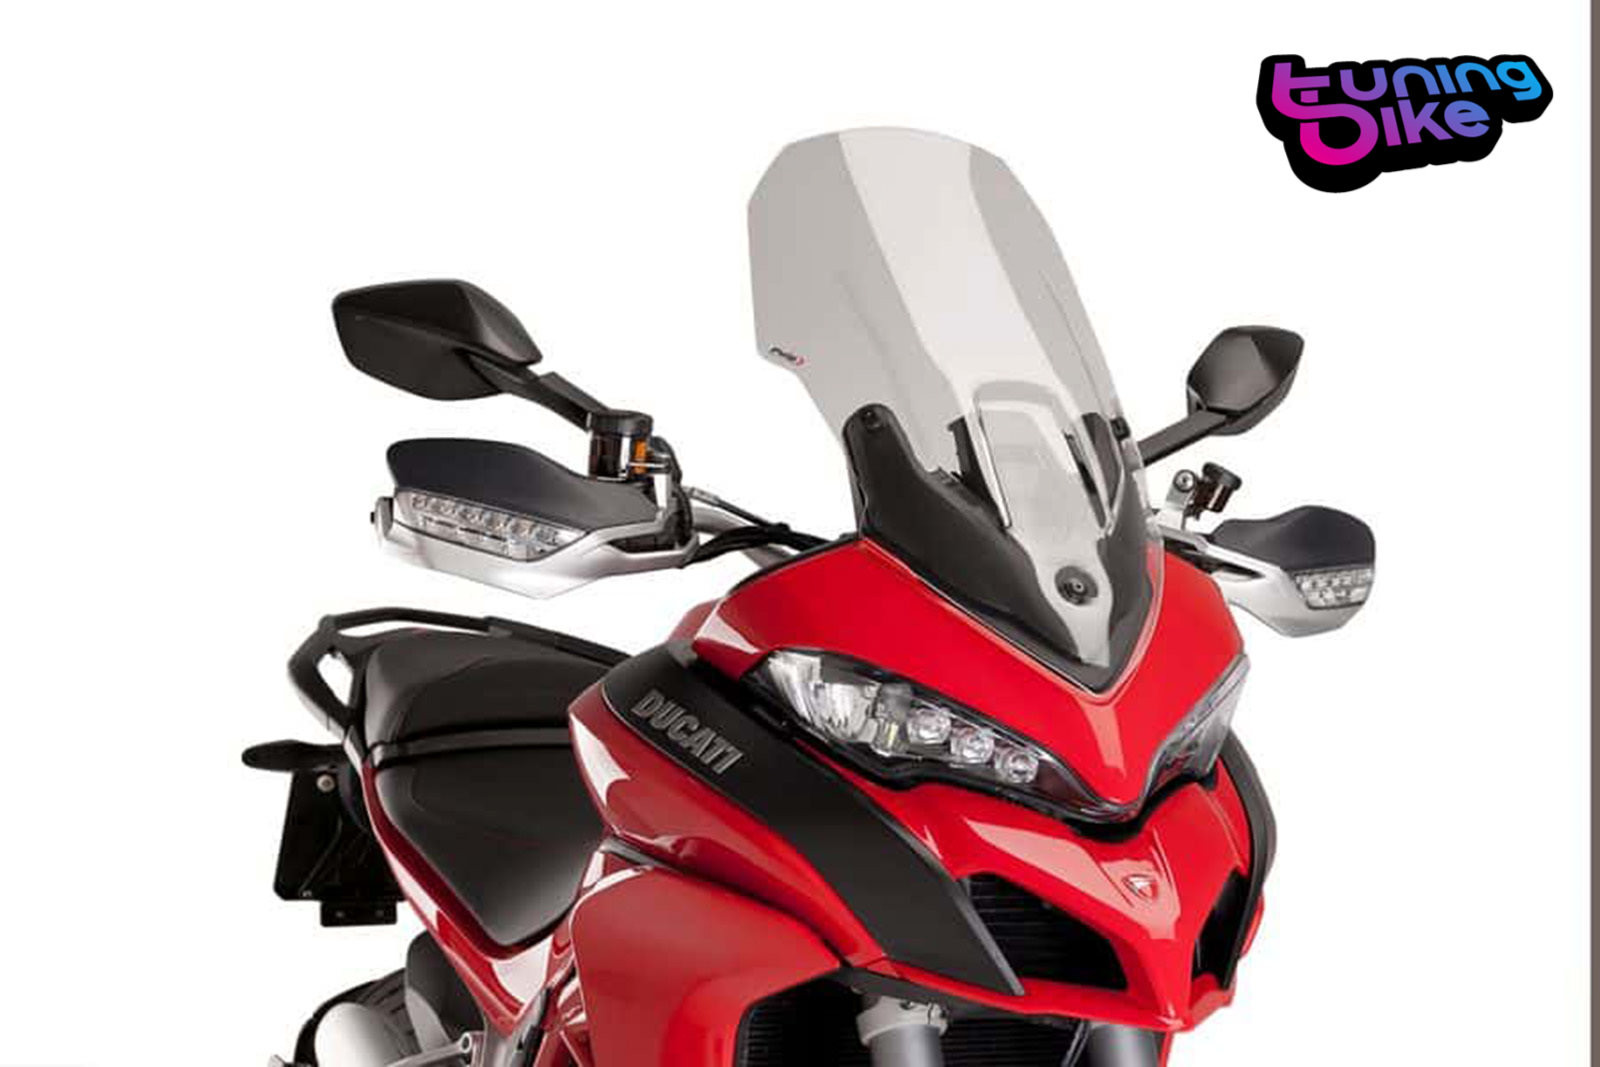 TOURING SCREEN PUIG DUCATI MULTISTRADA 1260/S/S D AIR 18' LIGHT SMOKE